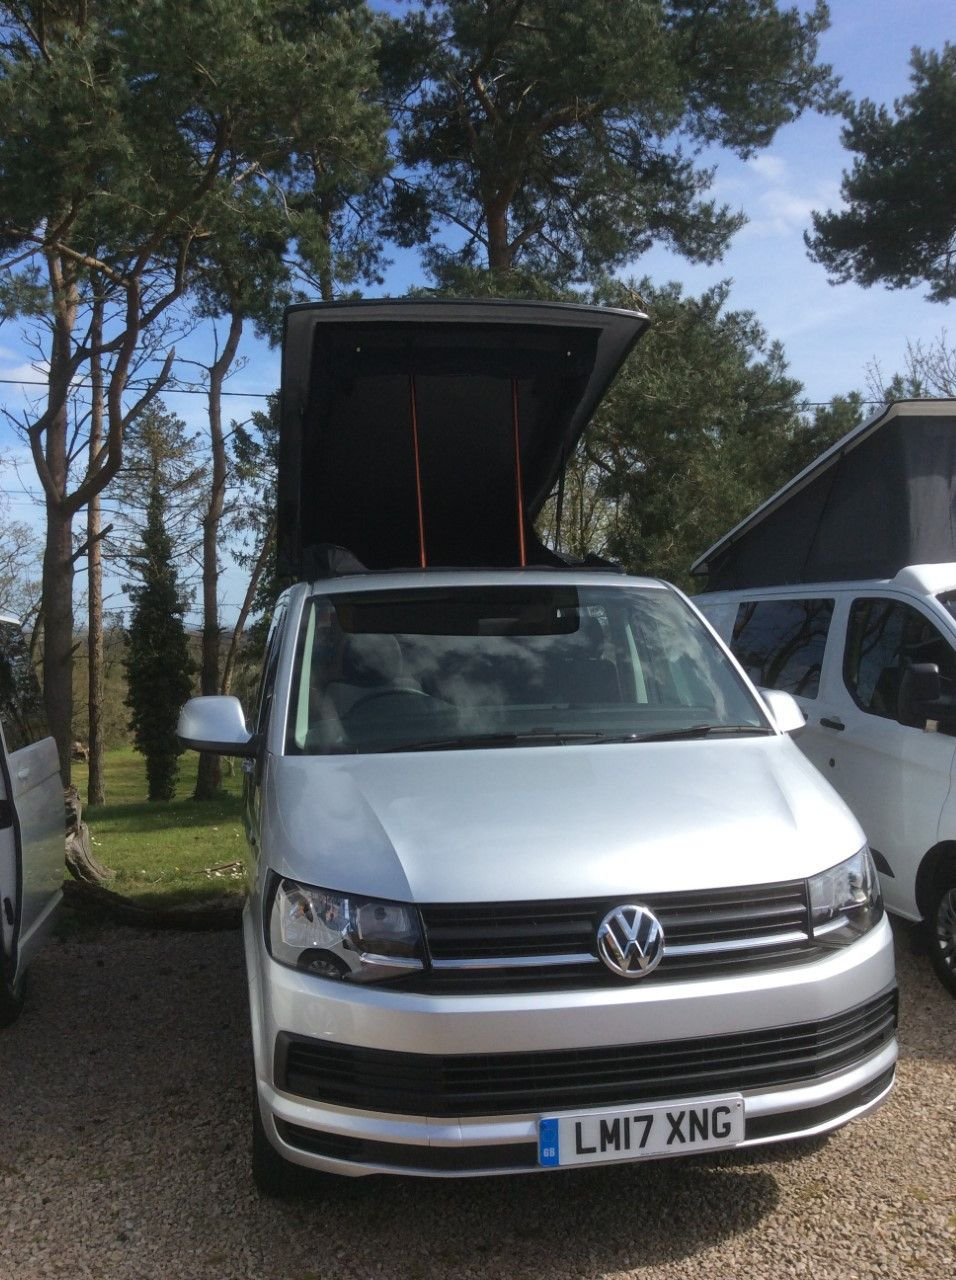 A VW T6 Campervan called Dilys and Black out pop top for summer nights. for hire in shrewsbury, Shropshire